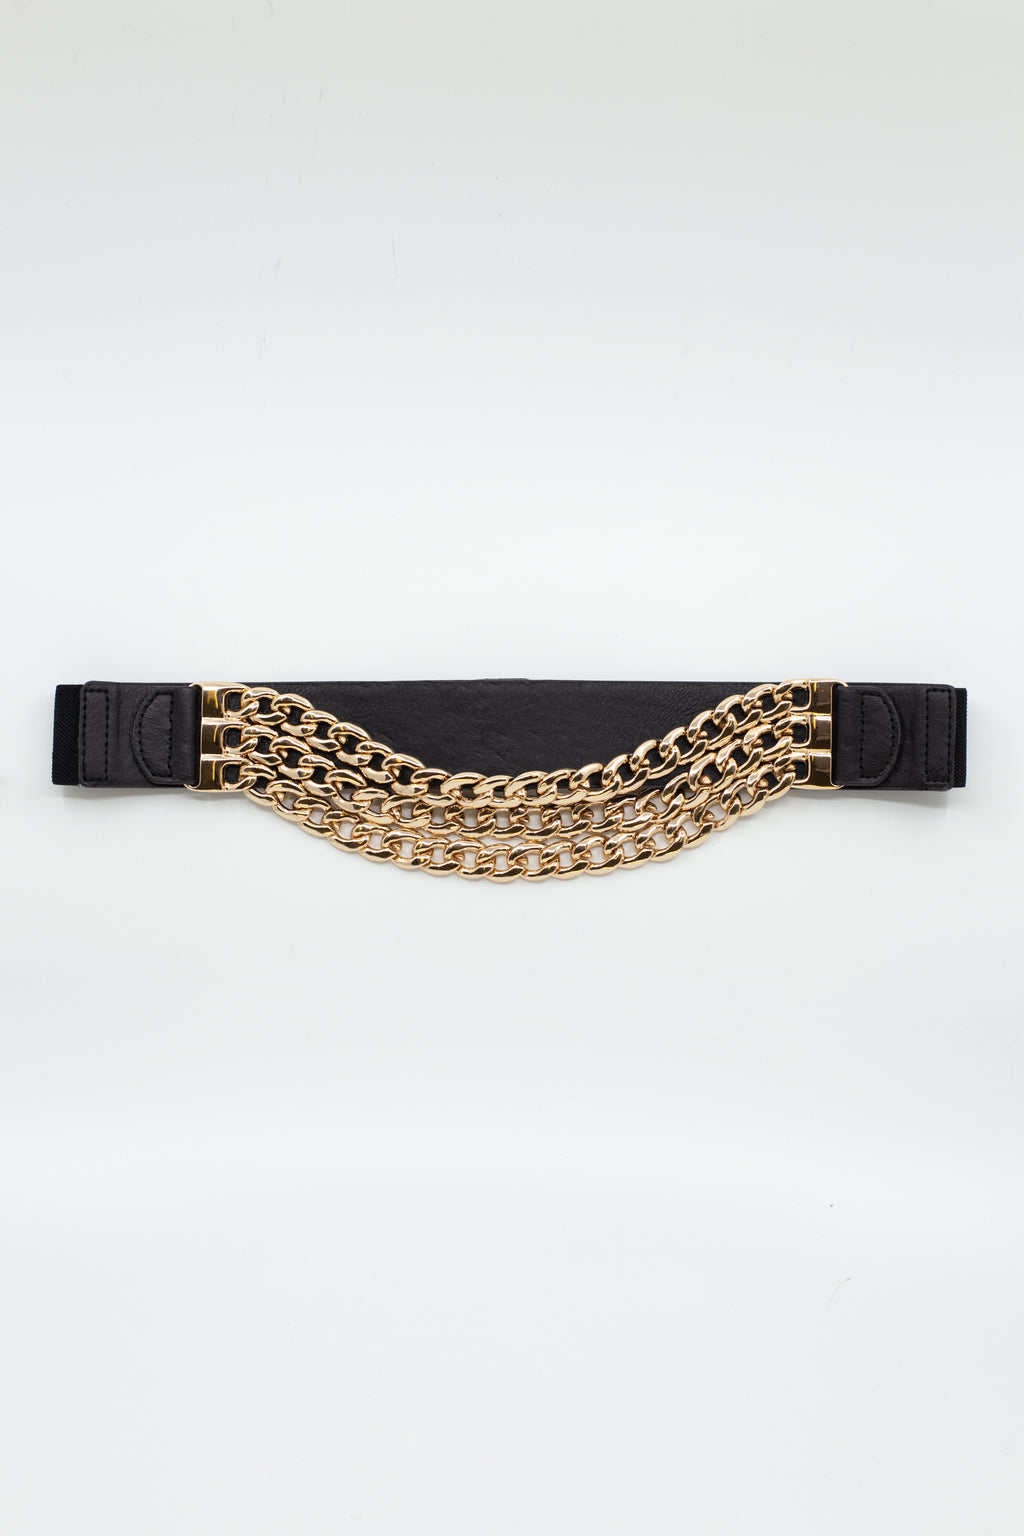 Triple Chain Front Waist Belt - honey